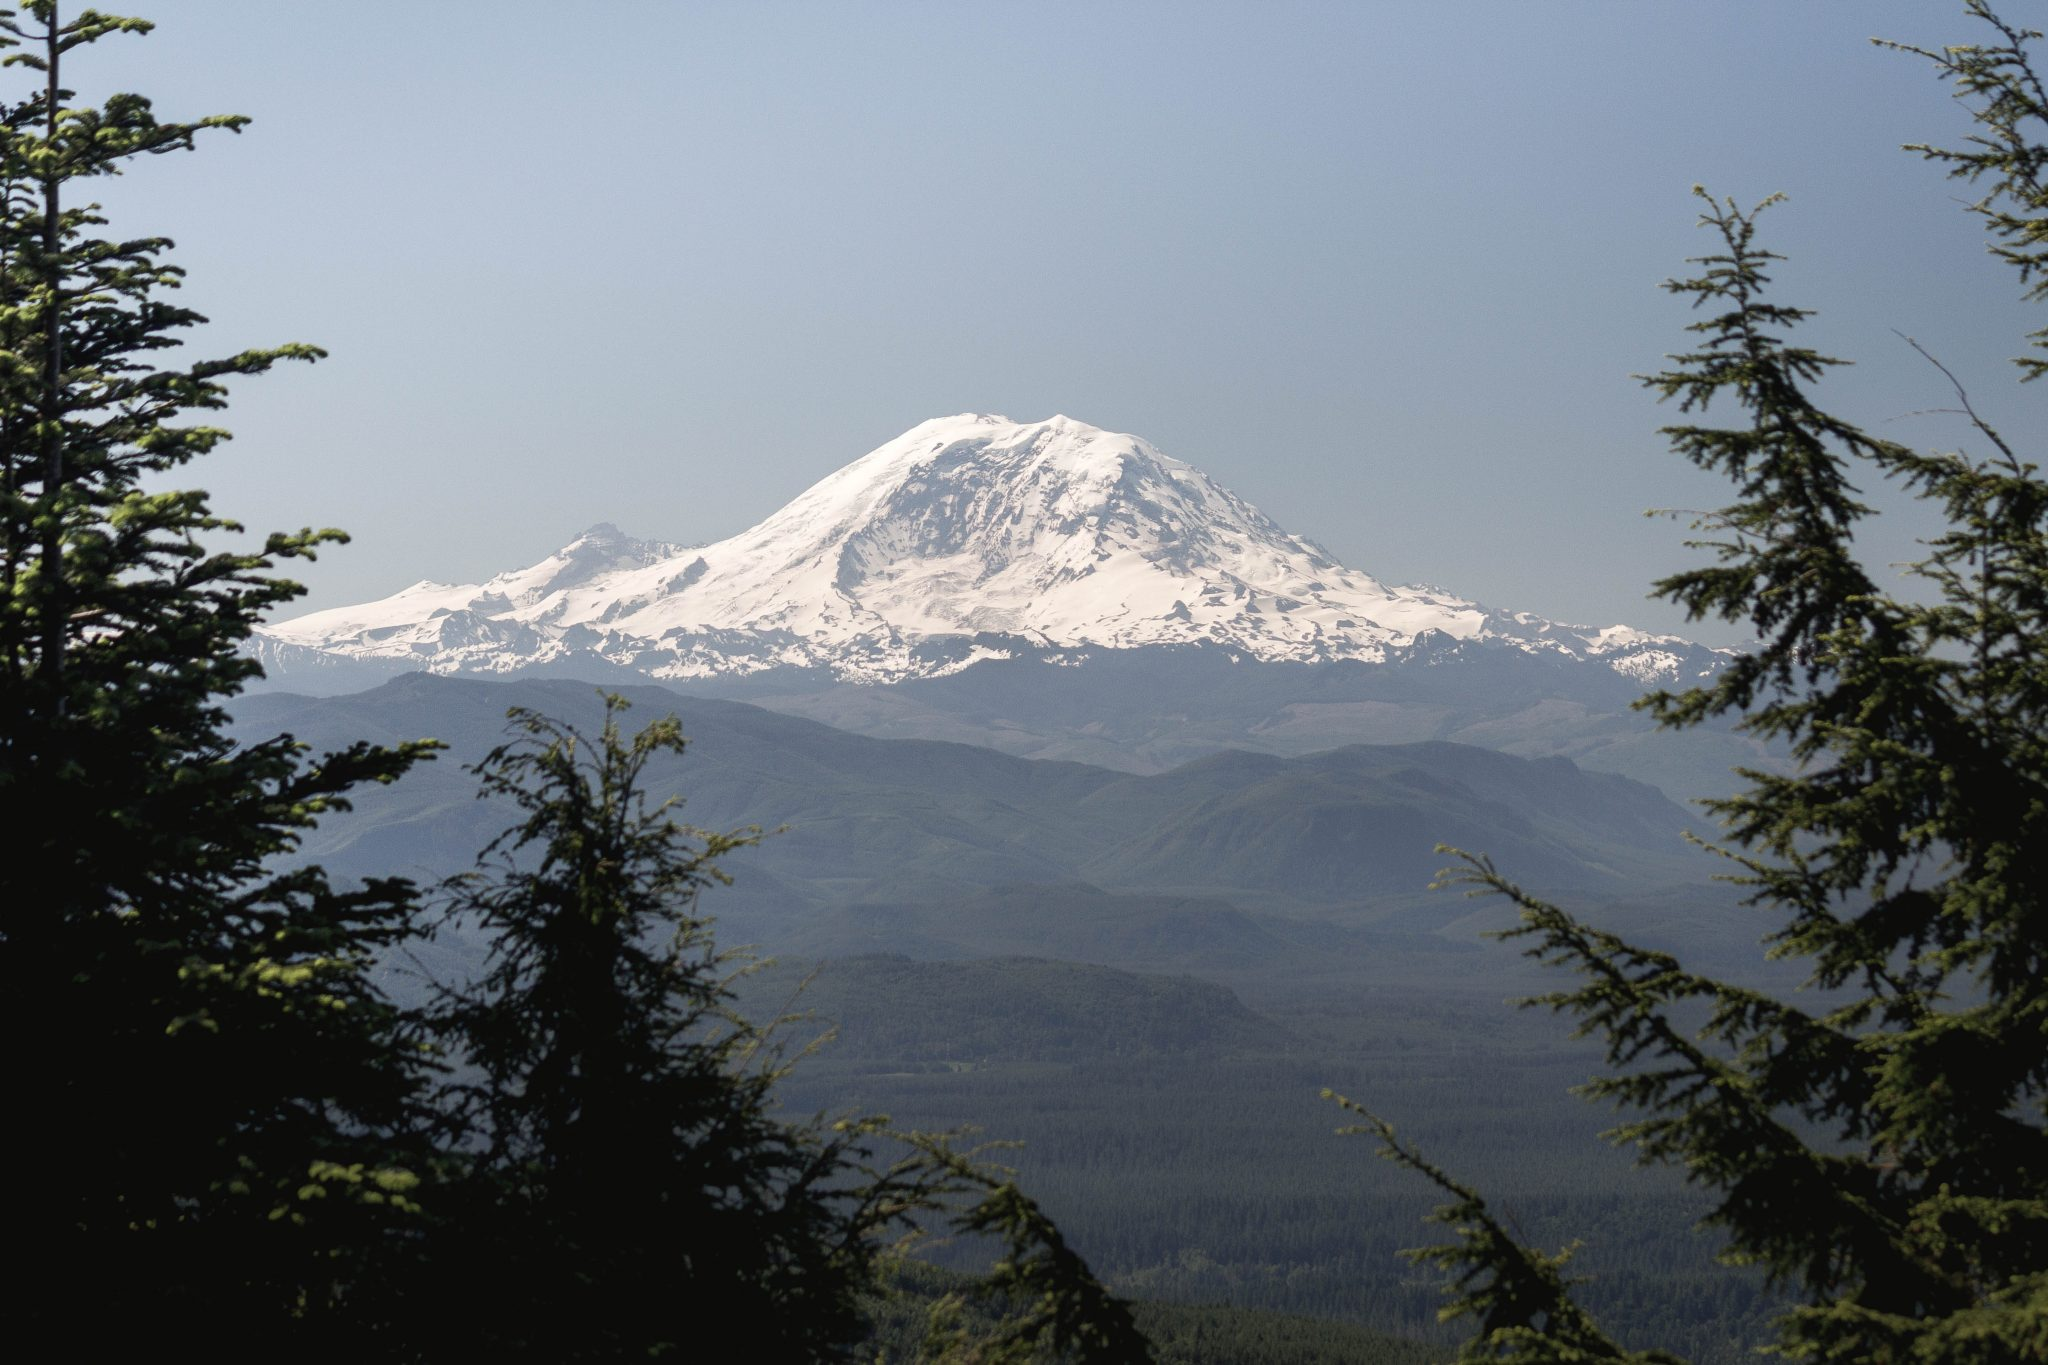 Mount Rainier from East Tiger Mountain